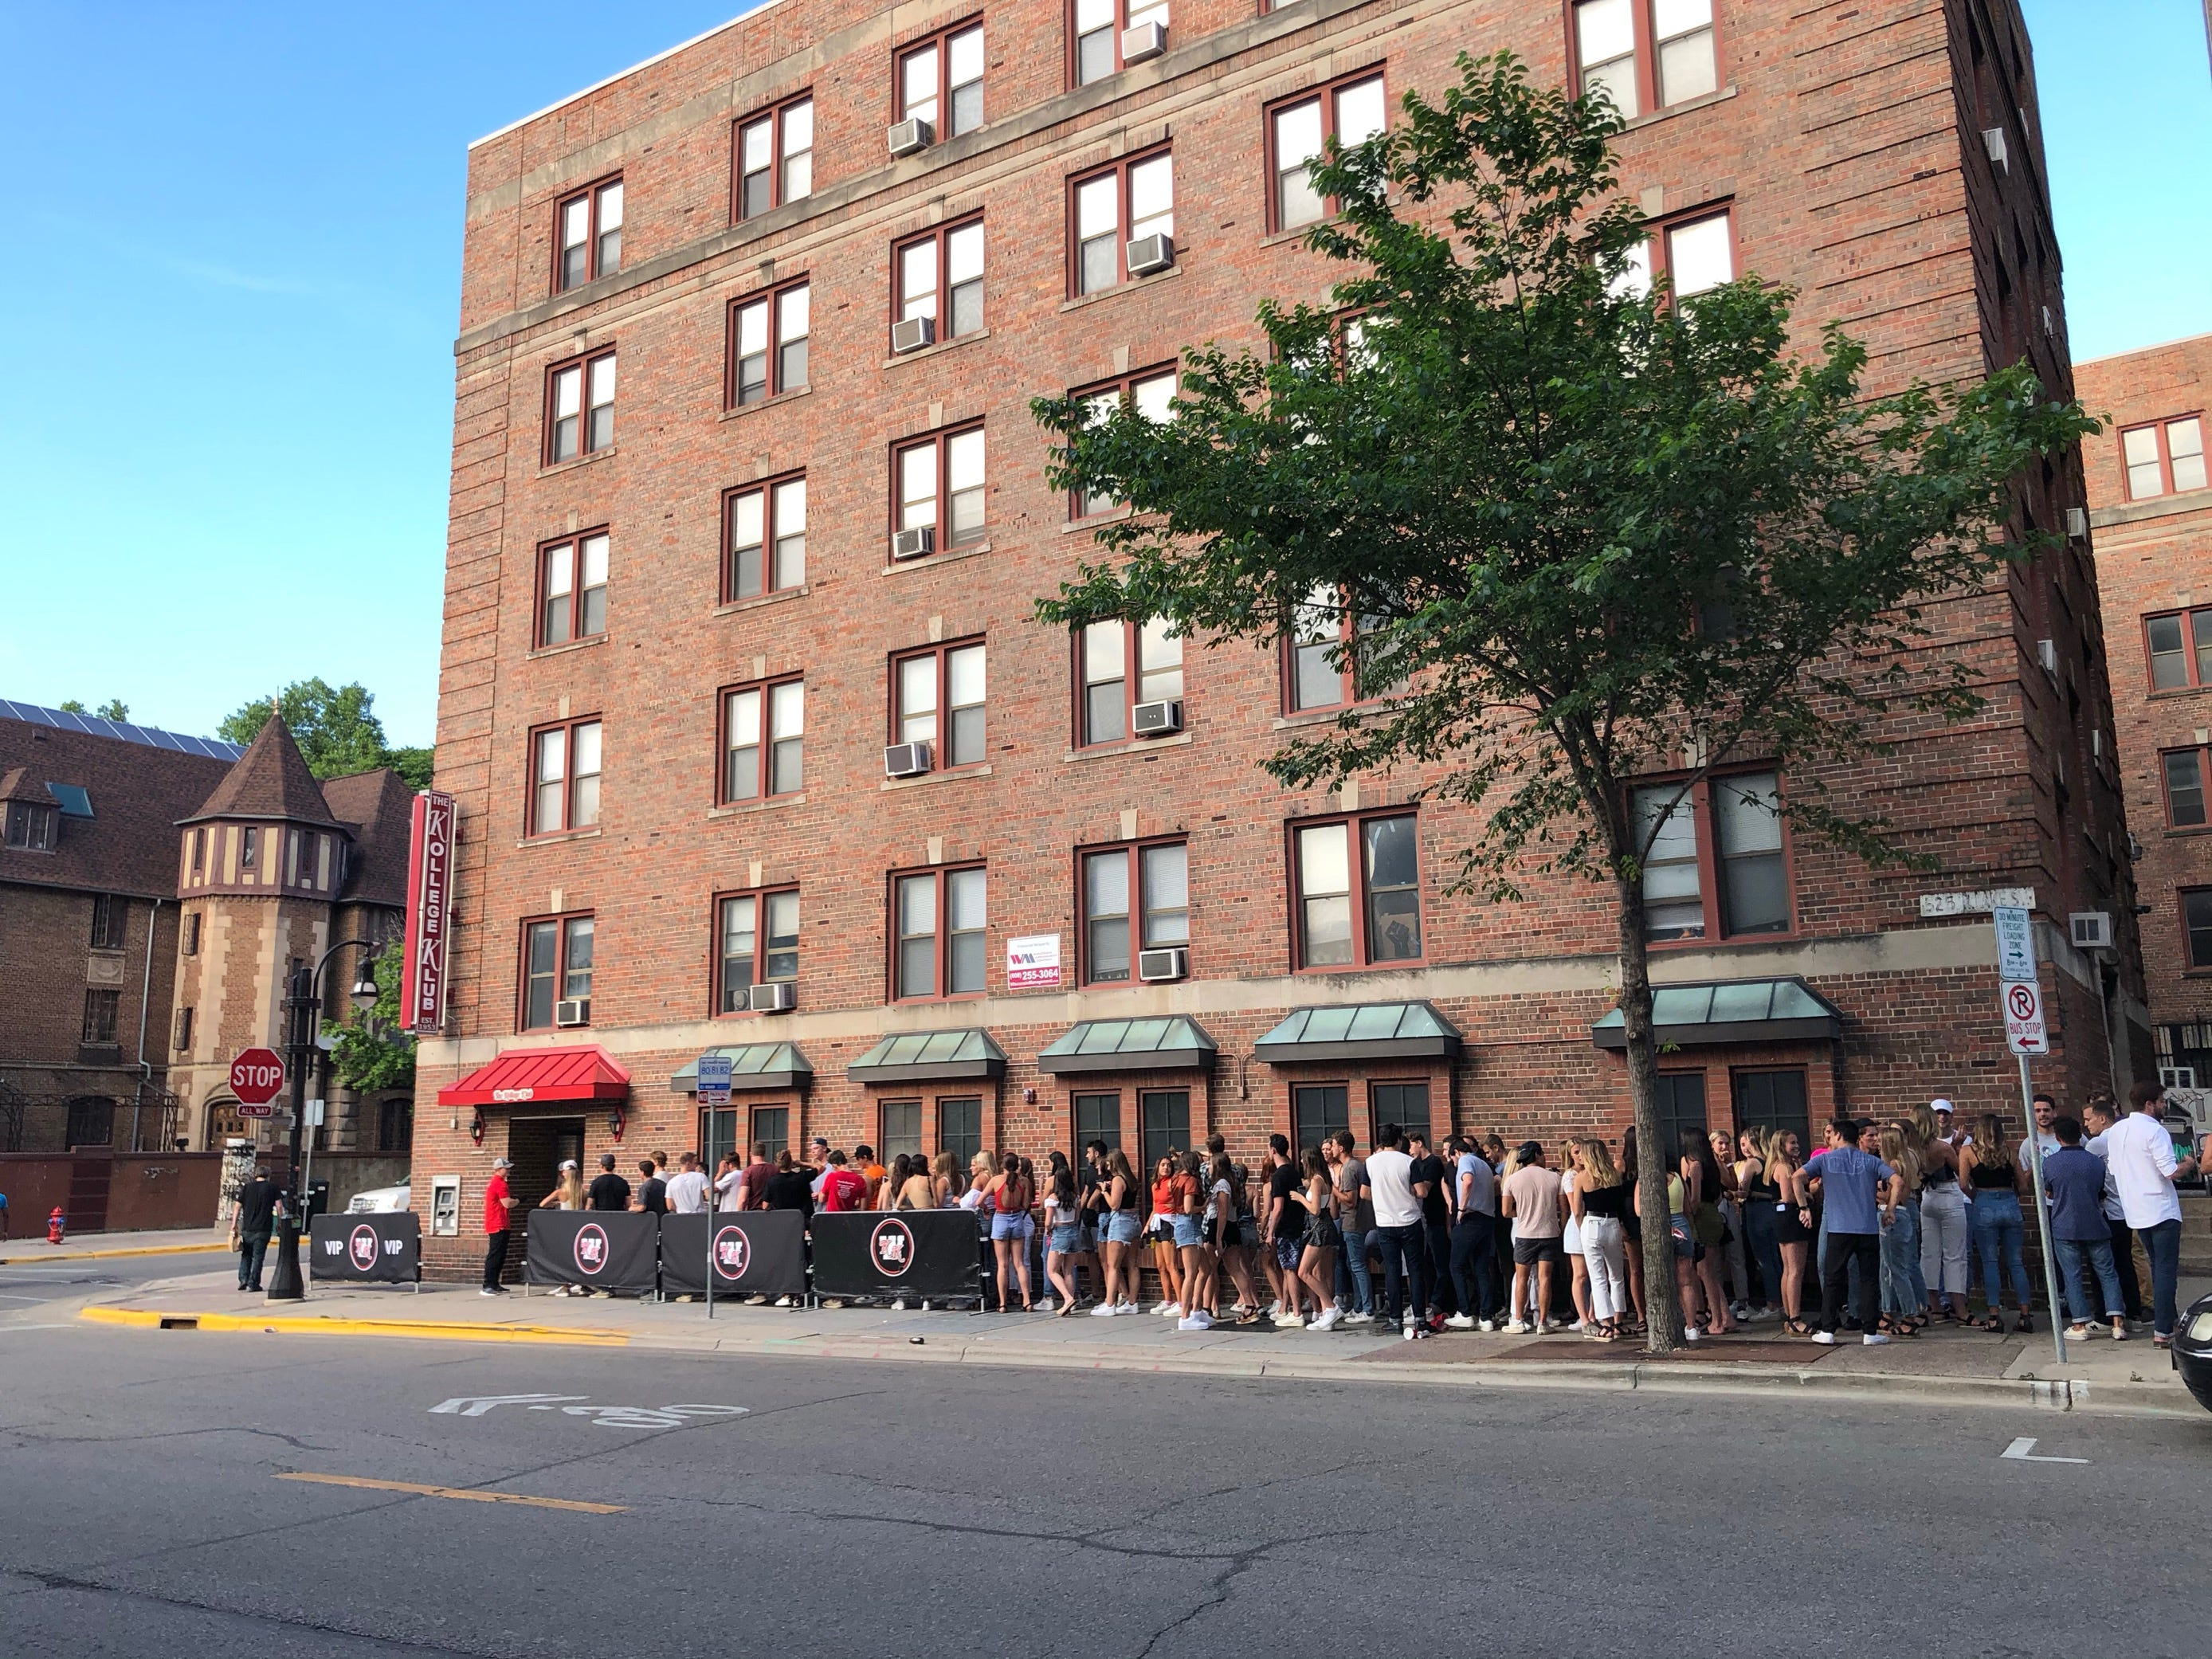 Bars in Madison have seen long lines as the city slowly reopened. Here, a line forms outside the Kollege Klub bar in Madison on Thursday, June 18. Dane County recently announced a sharp increase in new cases, with half of them affecting people in their 20s.